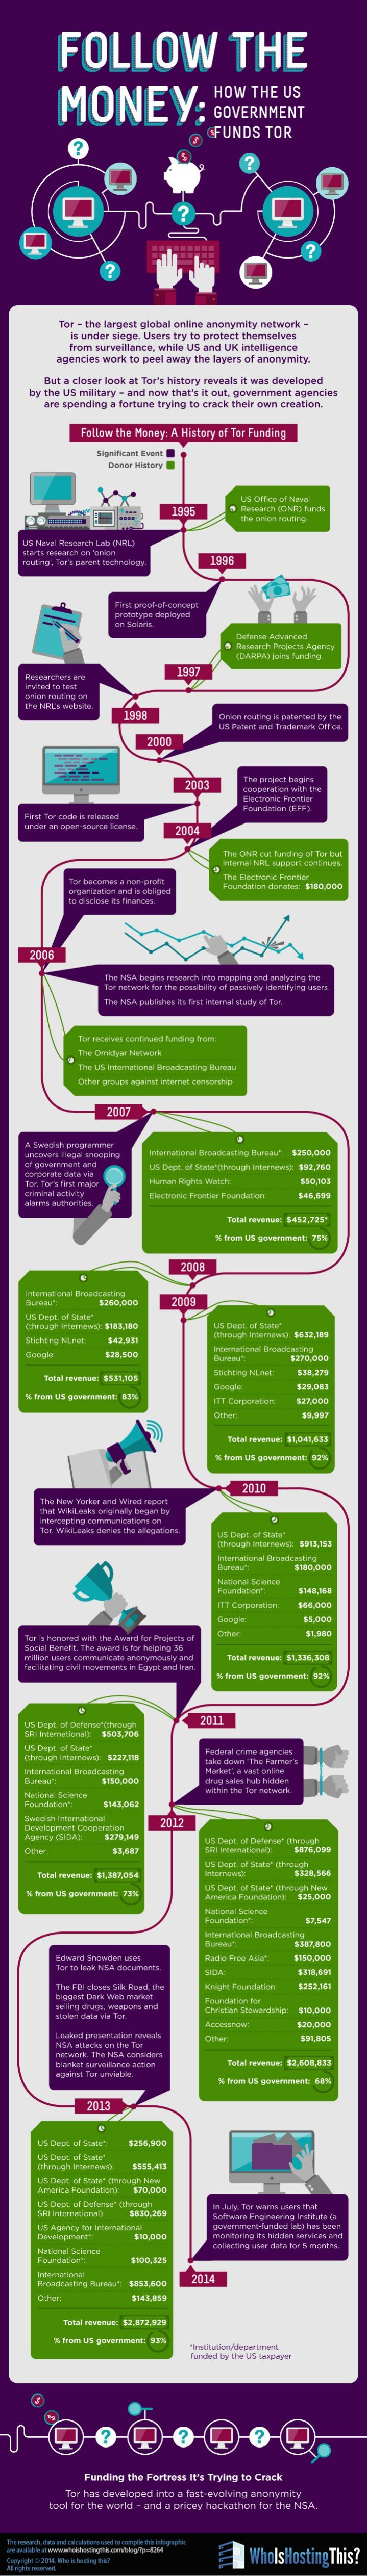 Follow the Money: How the US Government Funds Tor #infographic #TOR #Internet…